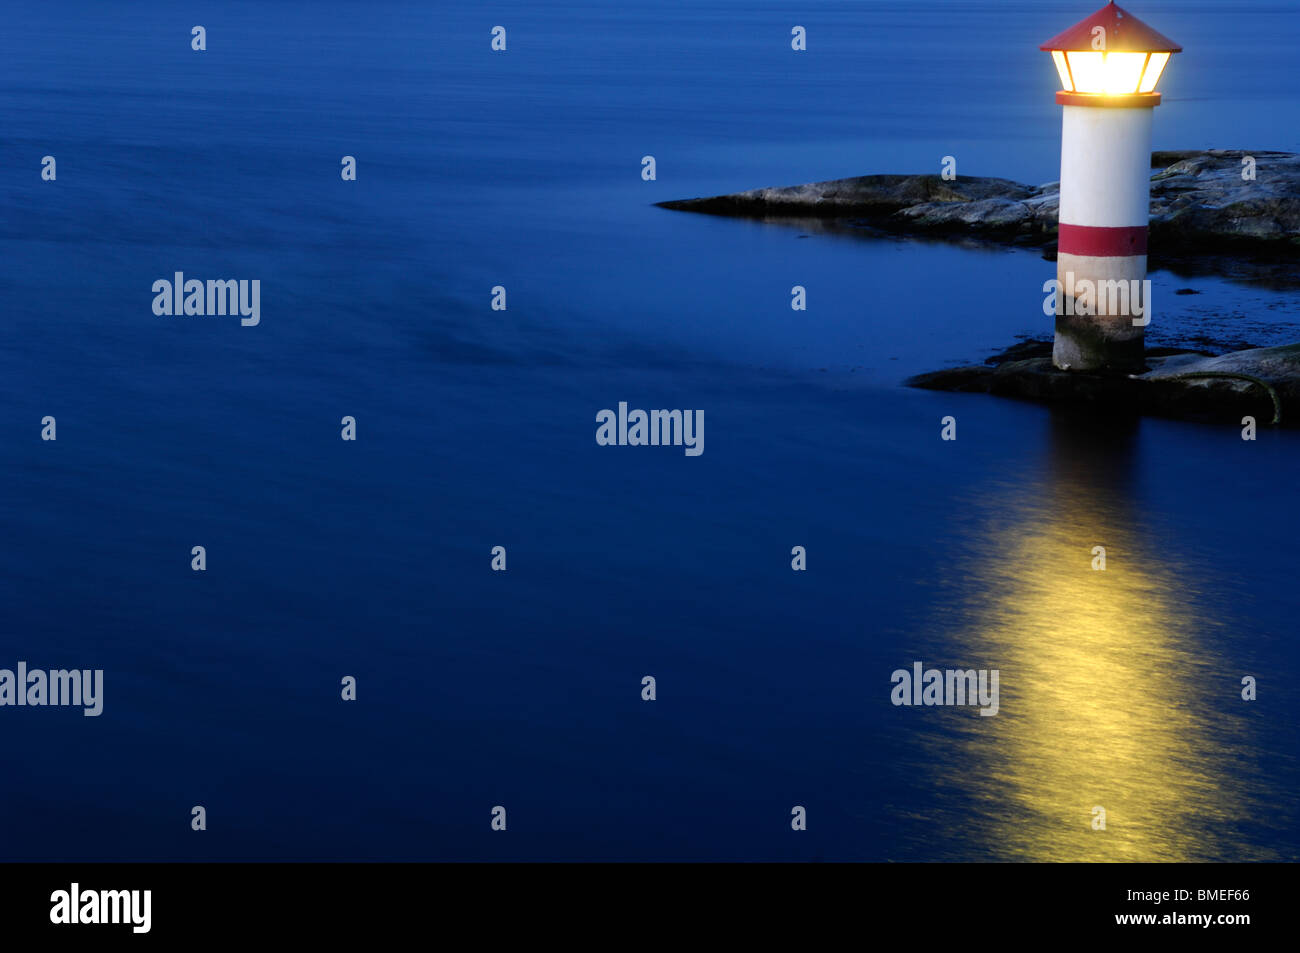 Scandinavia, Sweden, Vastkusten, View of illuminated lighthouse on sea, elevated view - Stock Image